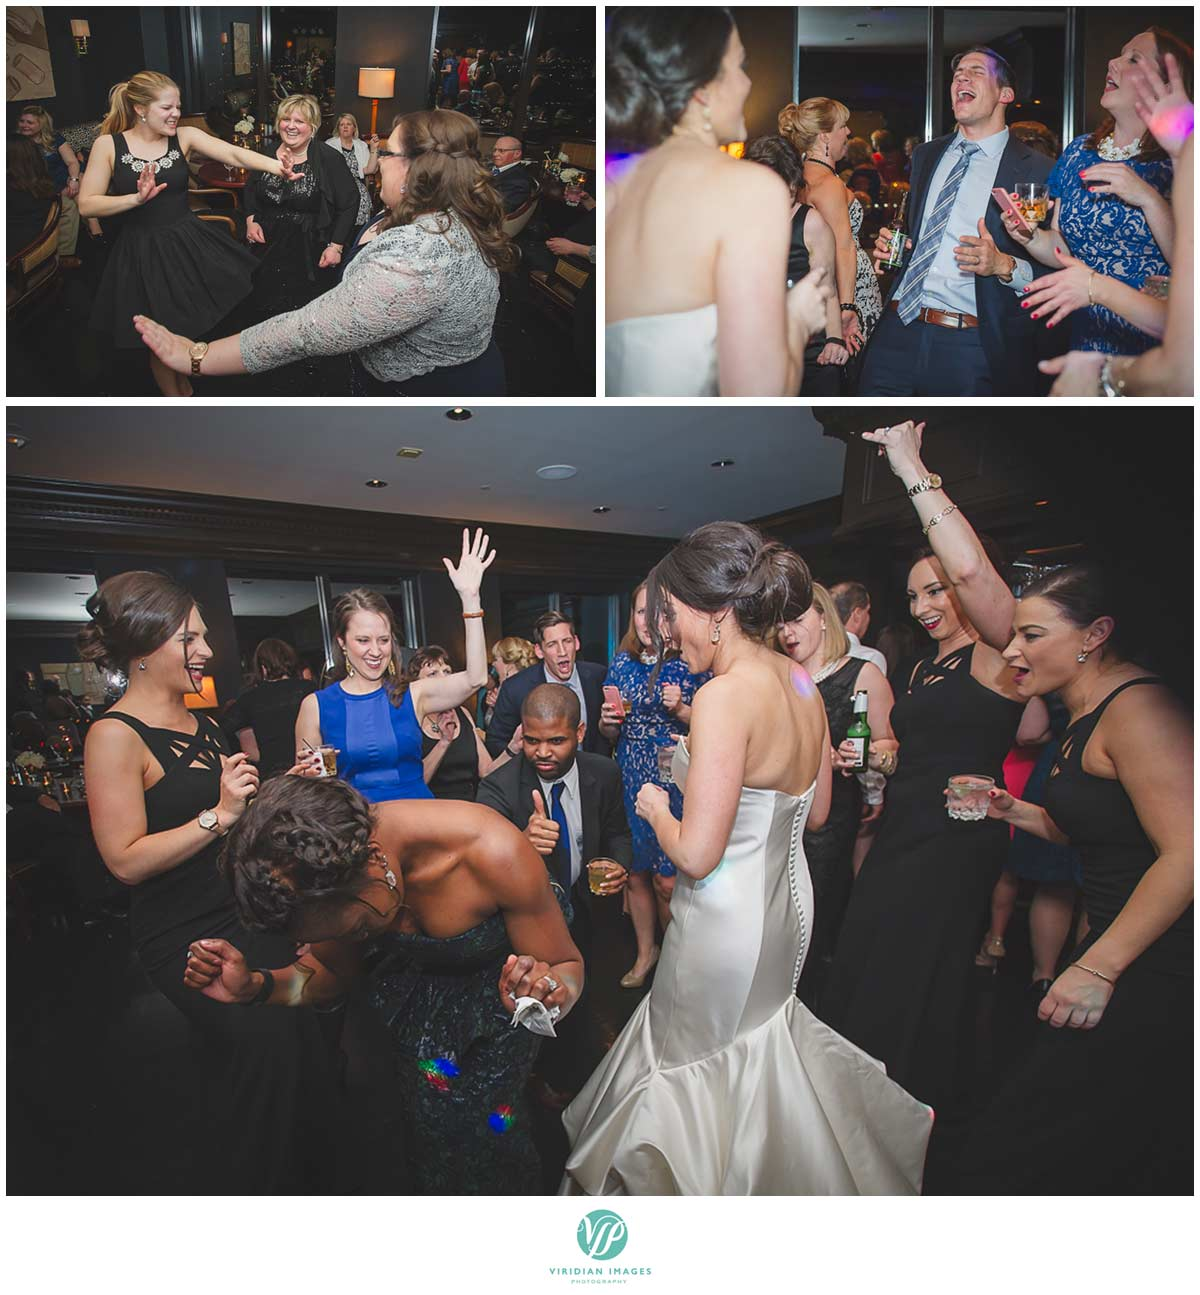 Peachtree_Club_Atlanta_Wedding_Viridian_Images_Photography-37